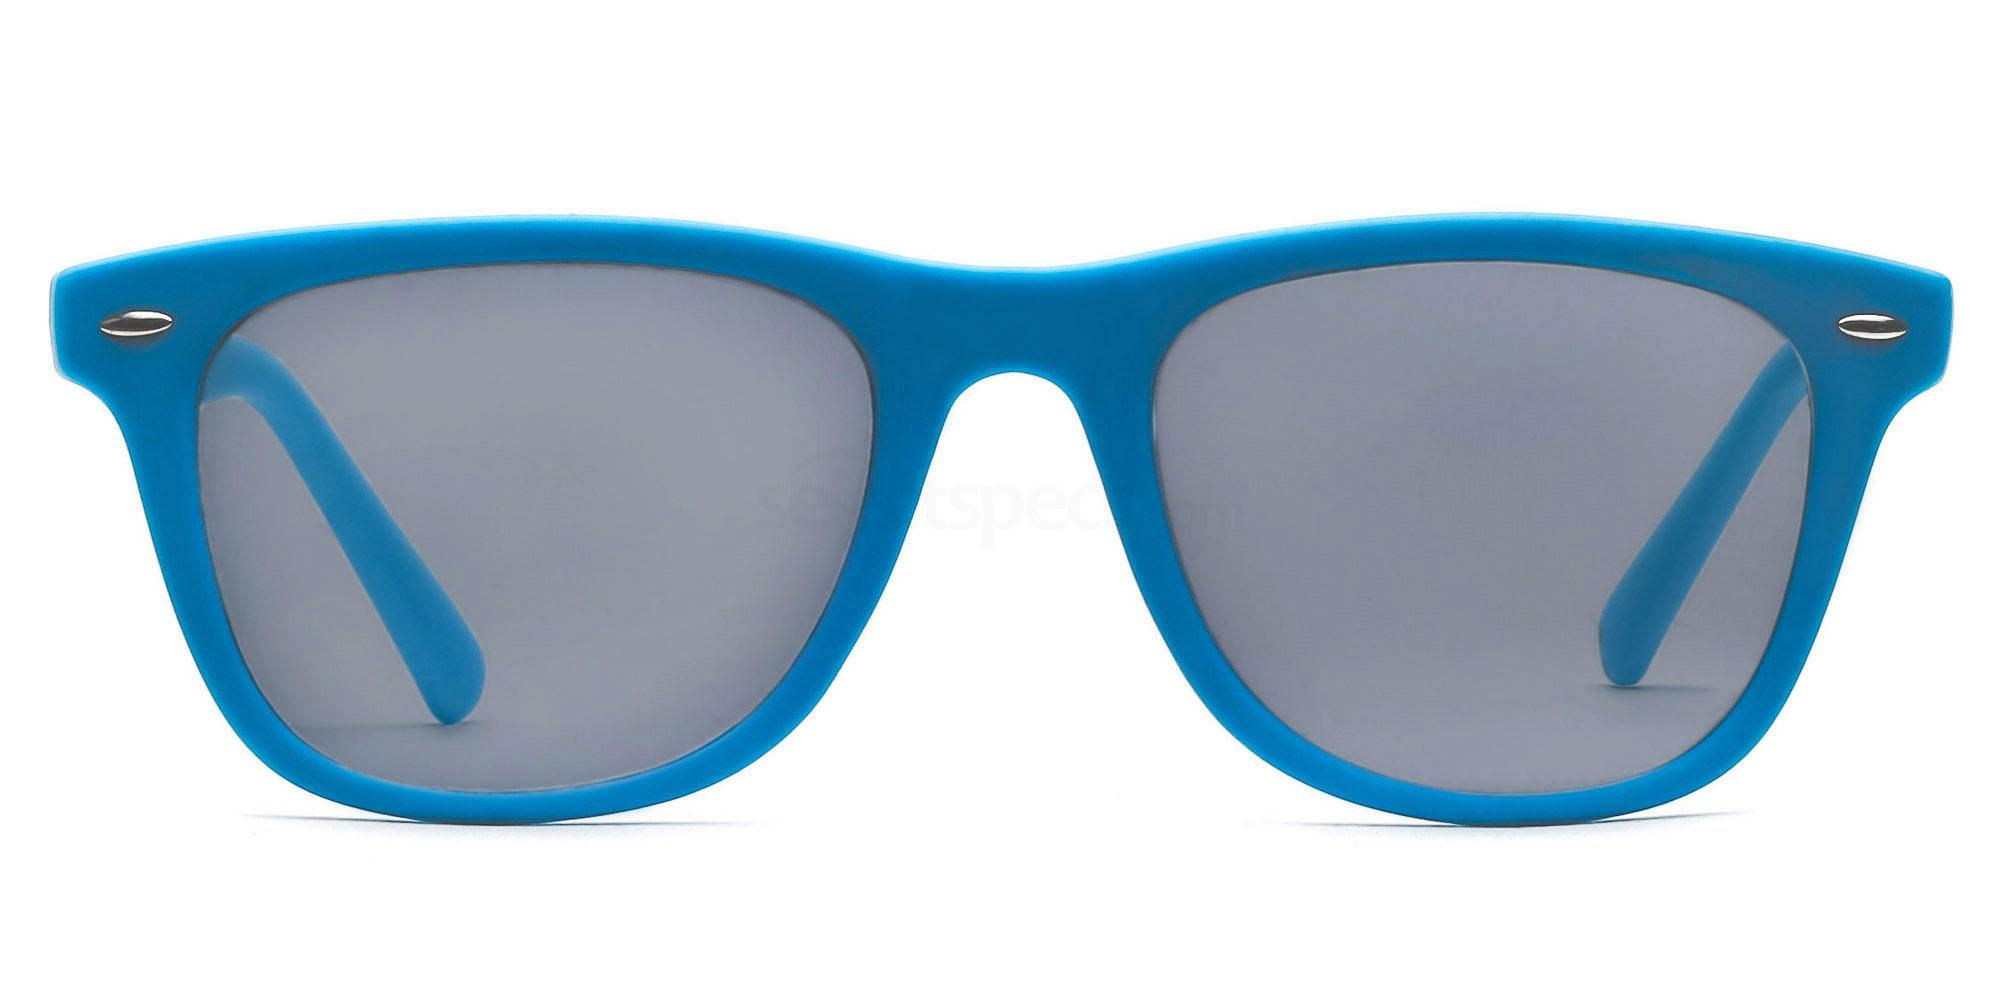 C5 8121 - Light Blue (Sunglasses) Sunglasses, Savannah